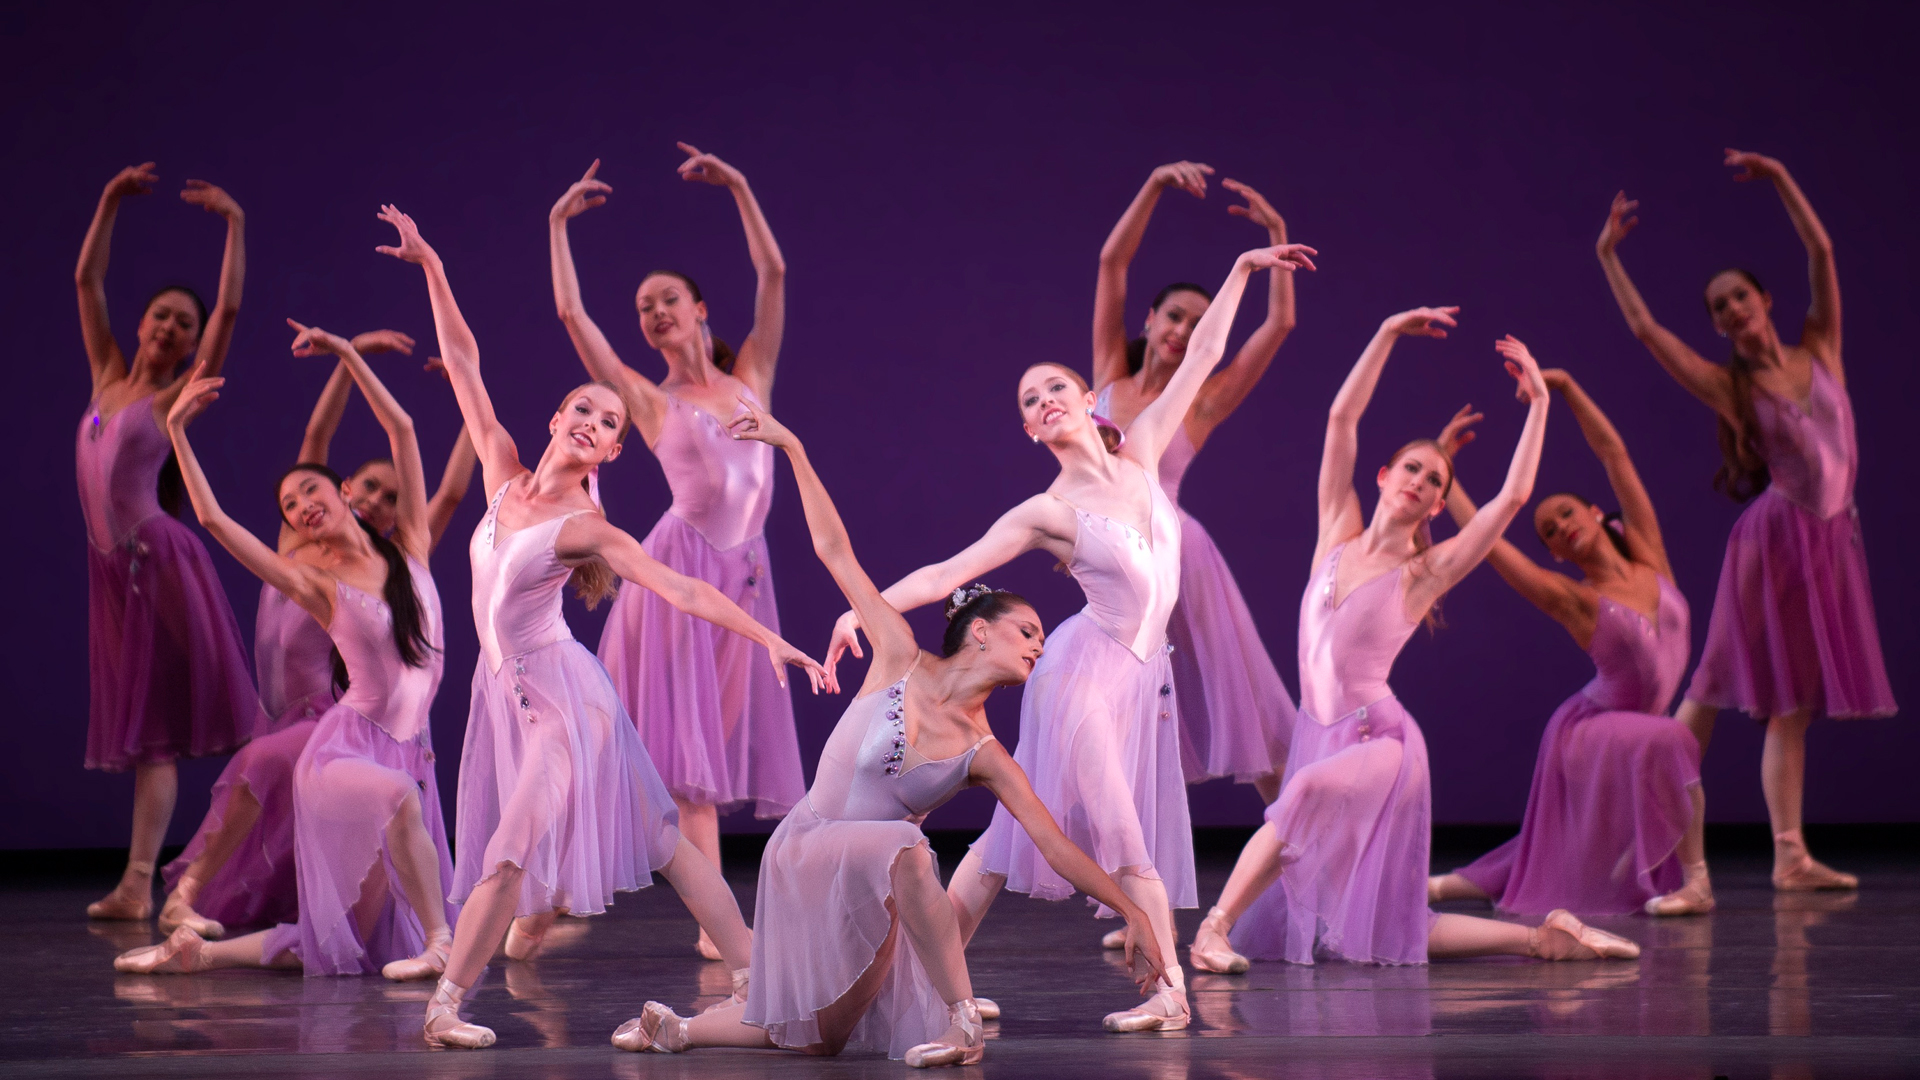 rows · Schedule - Buy Ballet tickets New York to Ballet shows and plays New York on the dates .